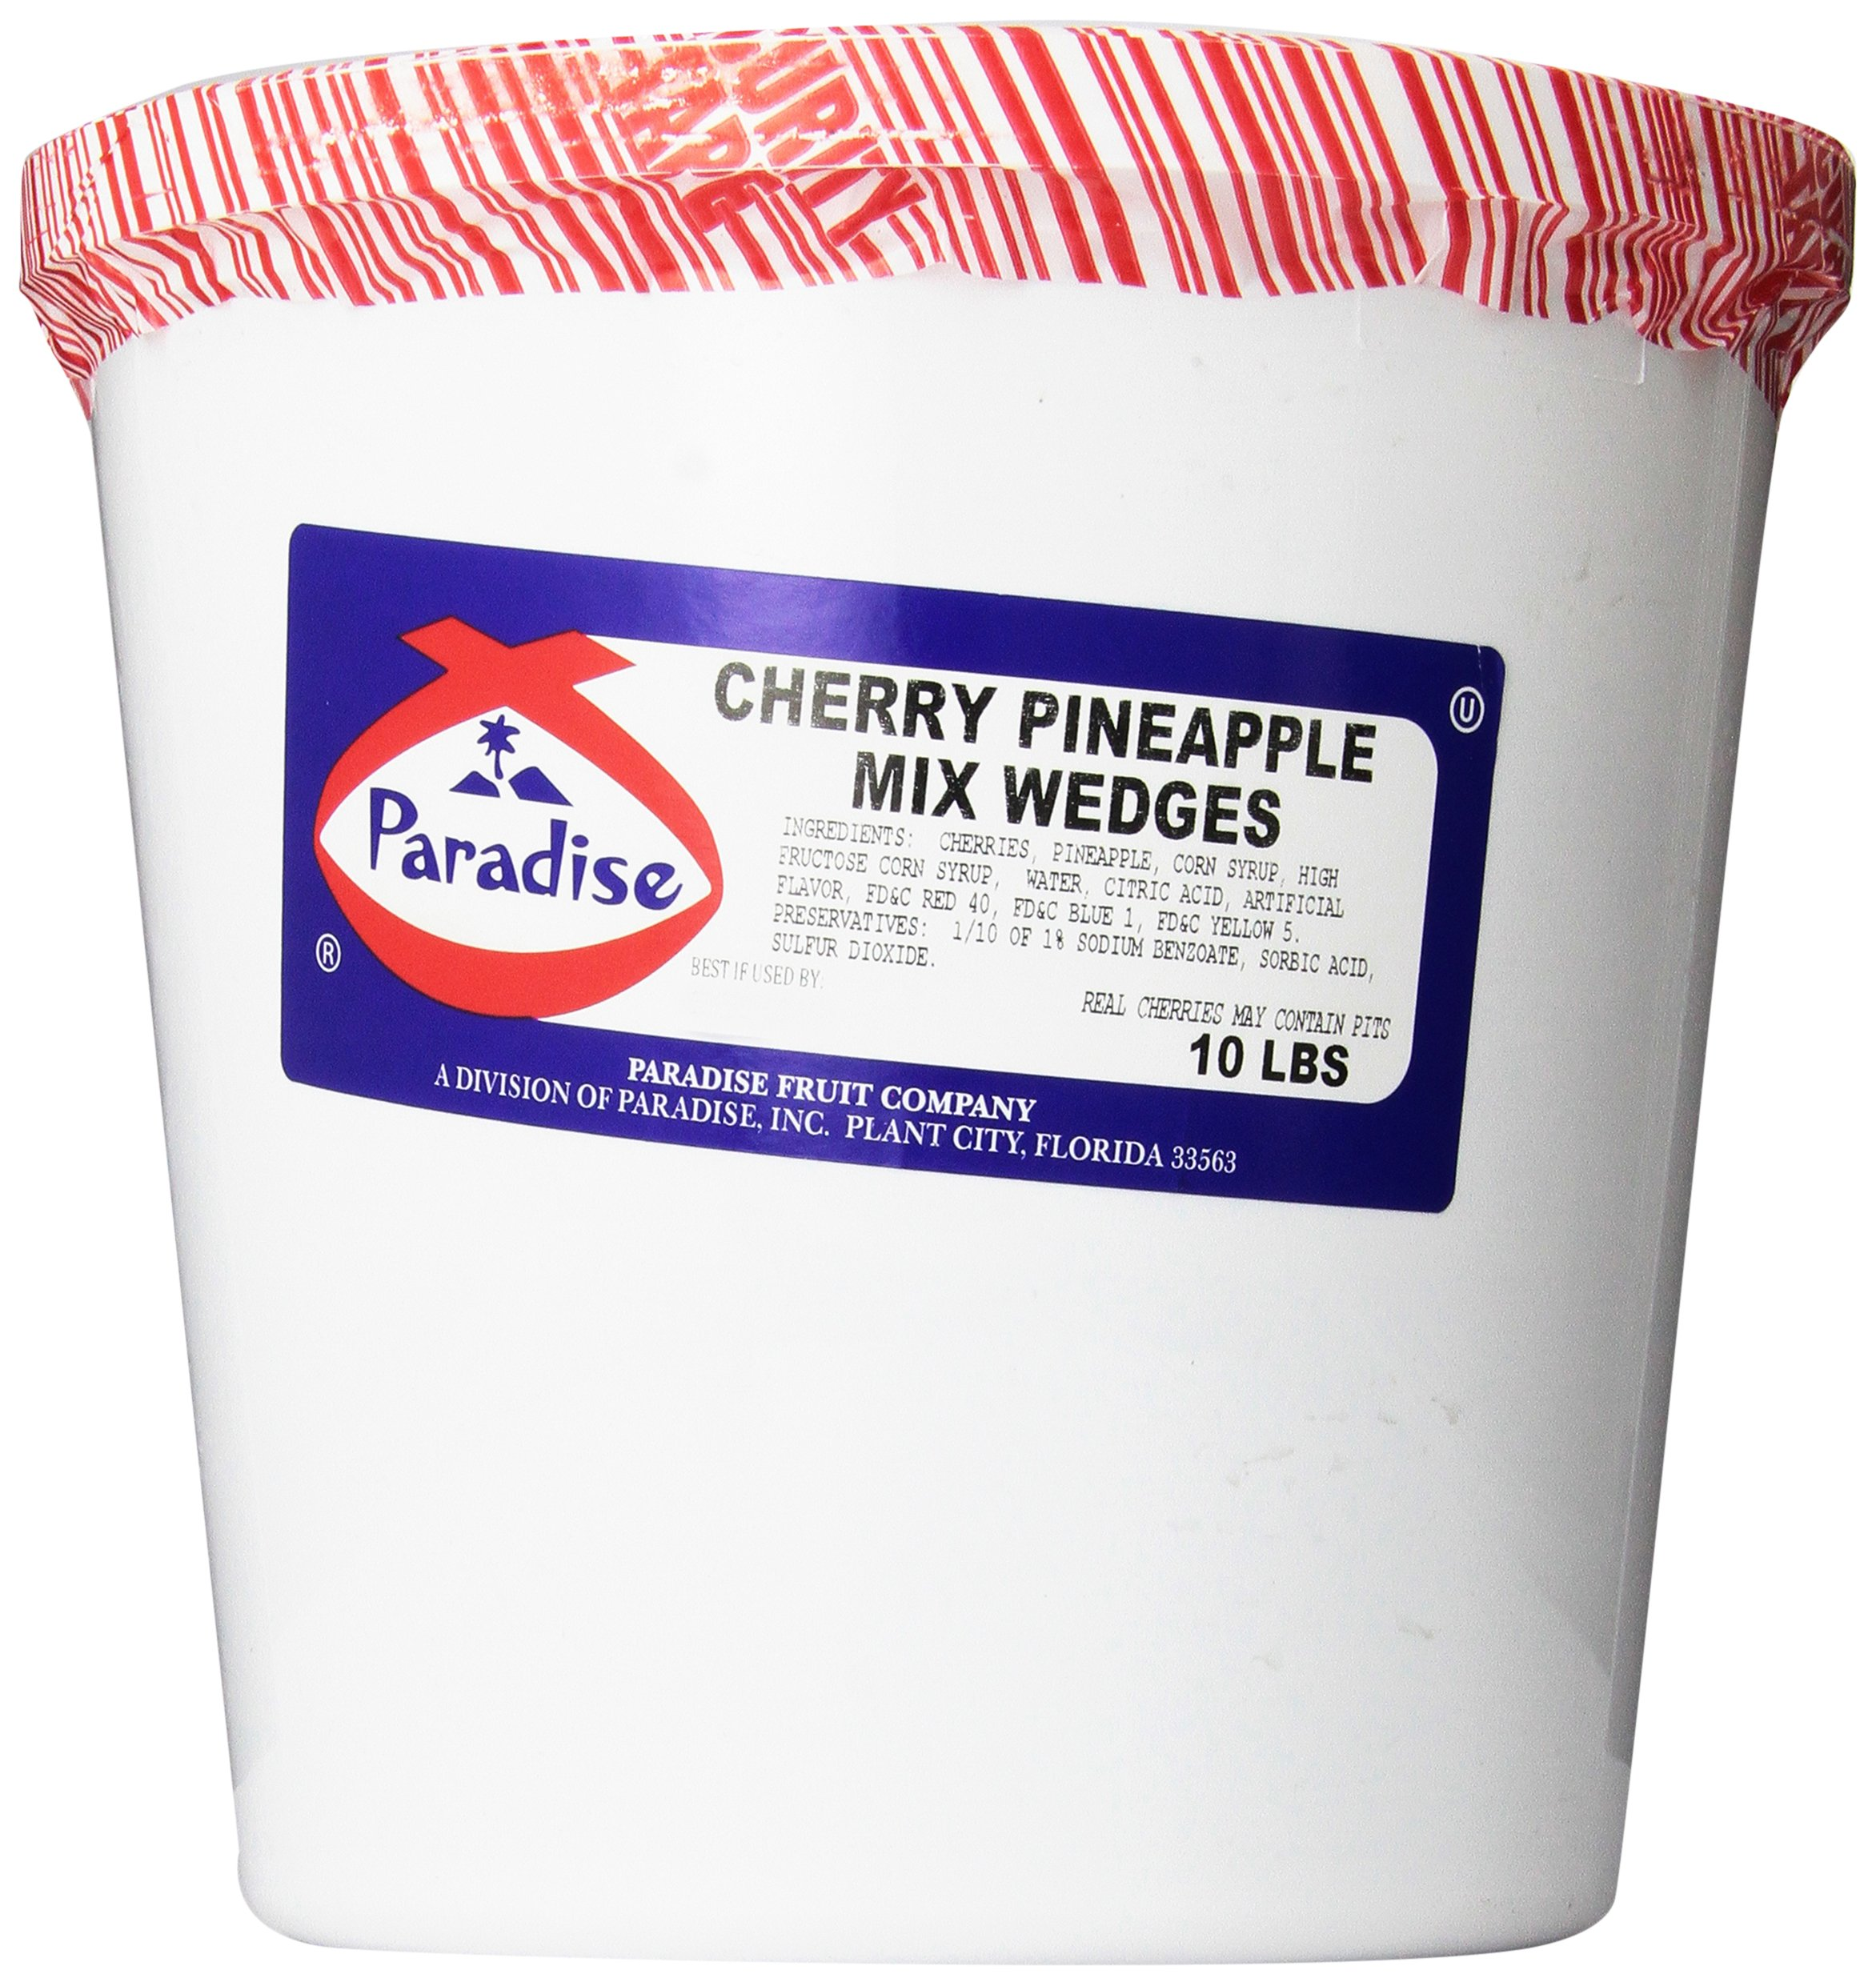 Paradise Cherry Pineapple Mix, Whole Cherry, Wedged, 10 Pound Tub by Paradise